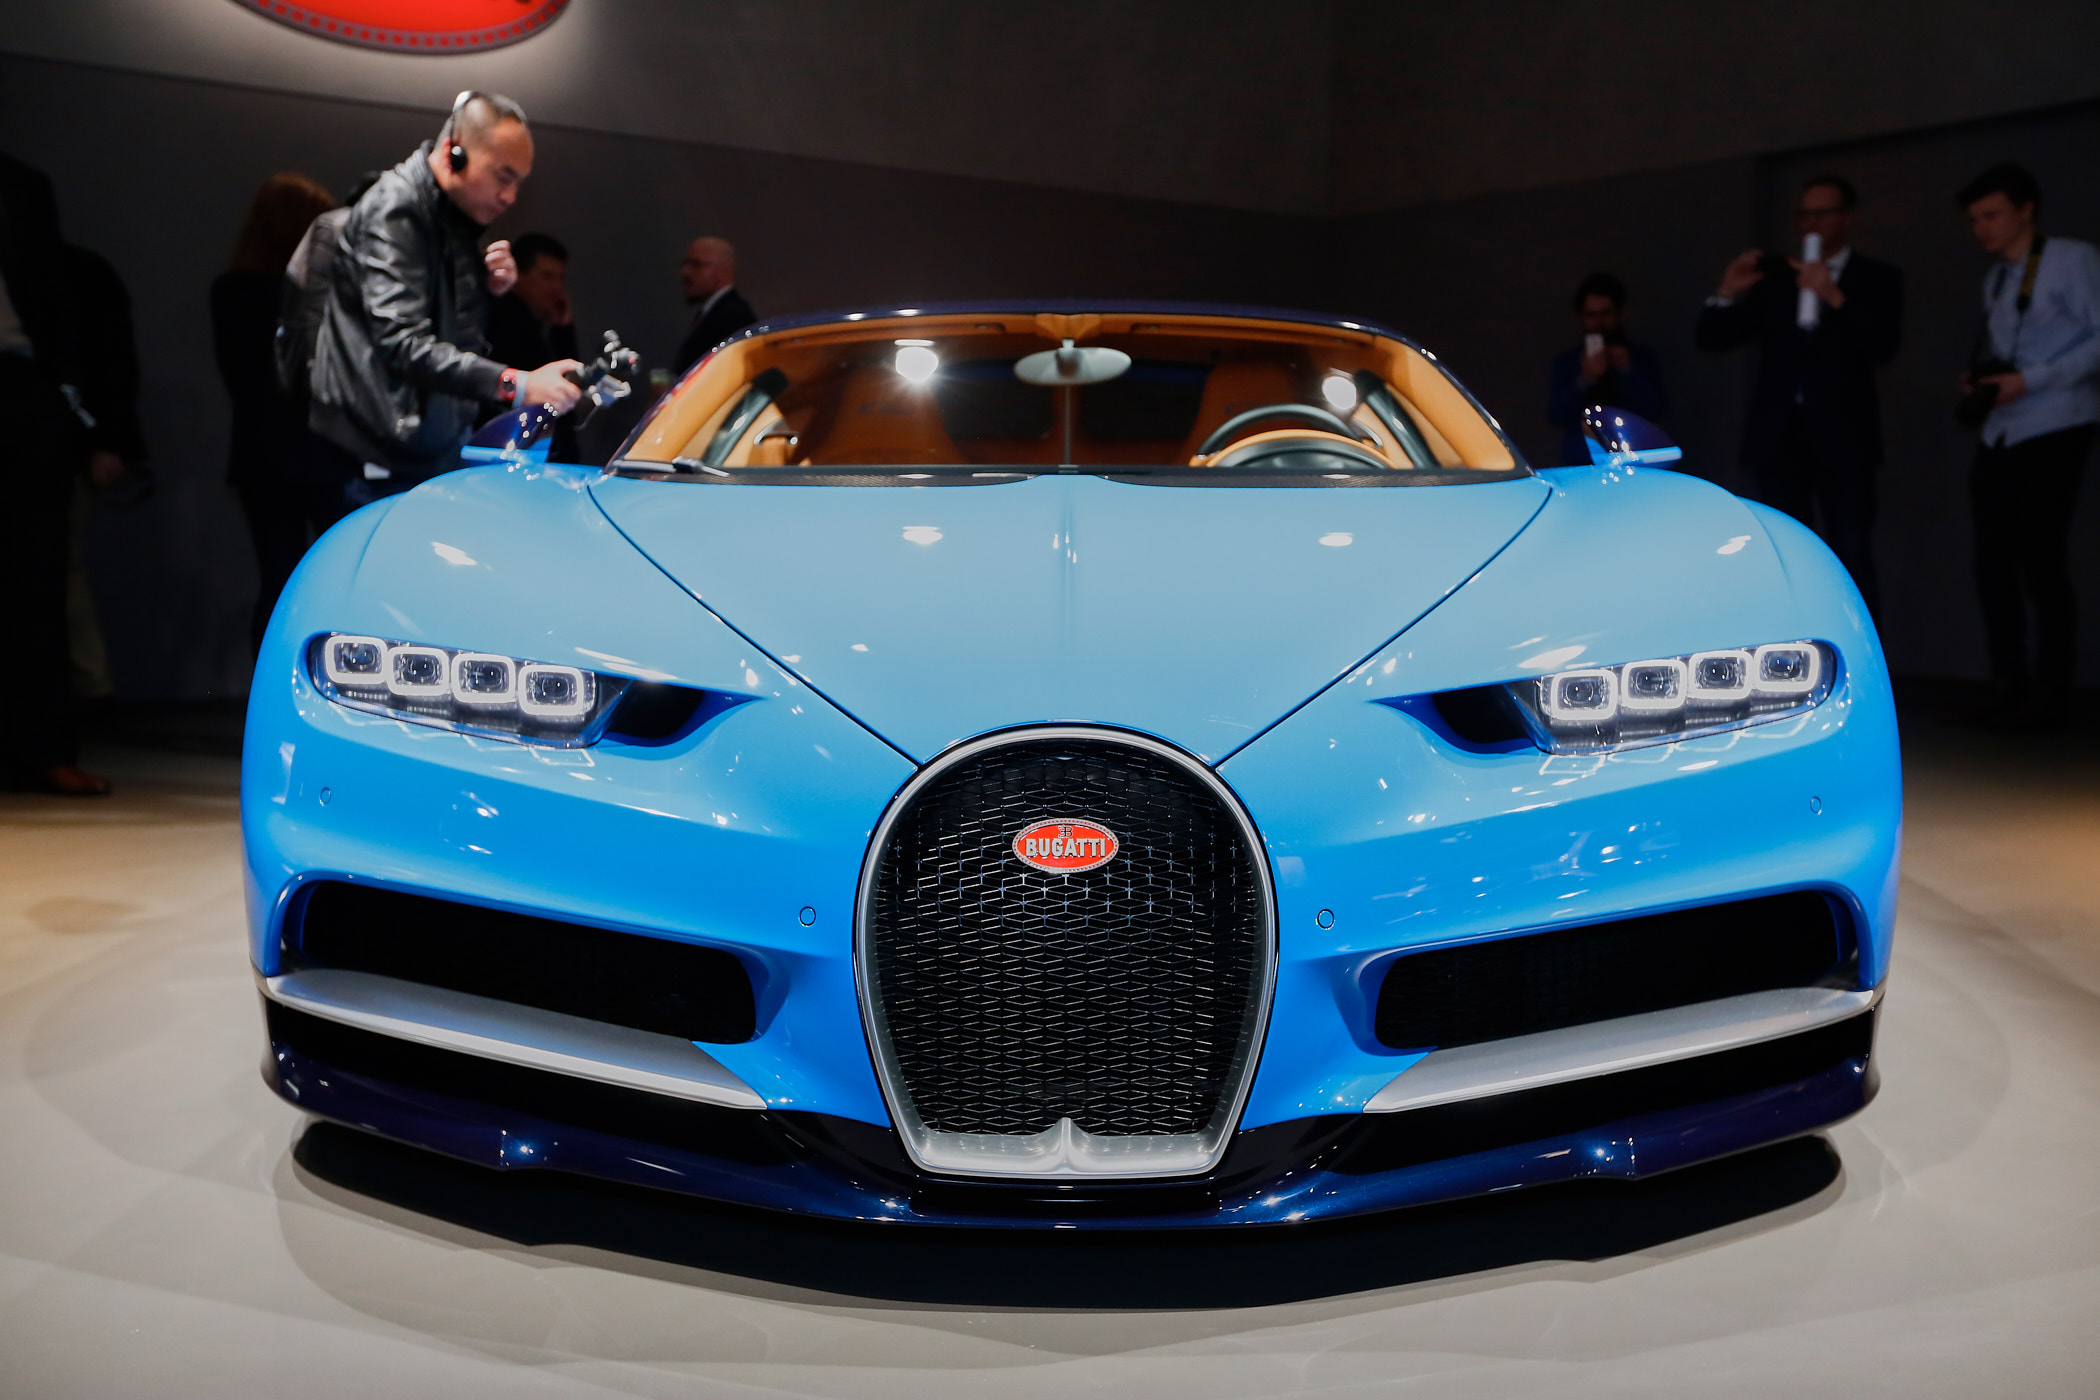 G550 For Sale >> Bugatti Chiron revealed: 1,480 hp and 0-62 mph in under 2 ...